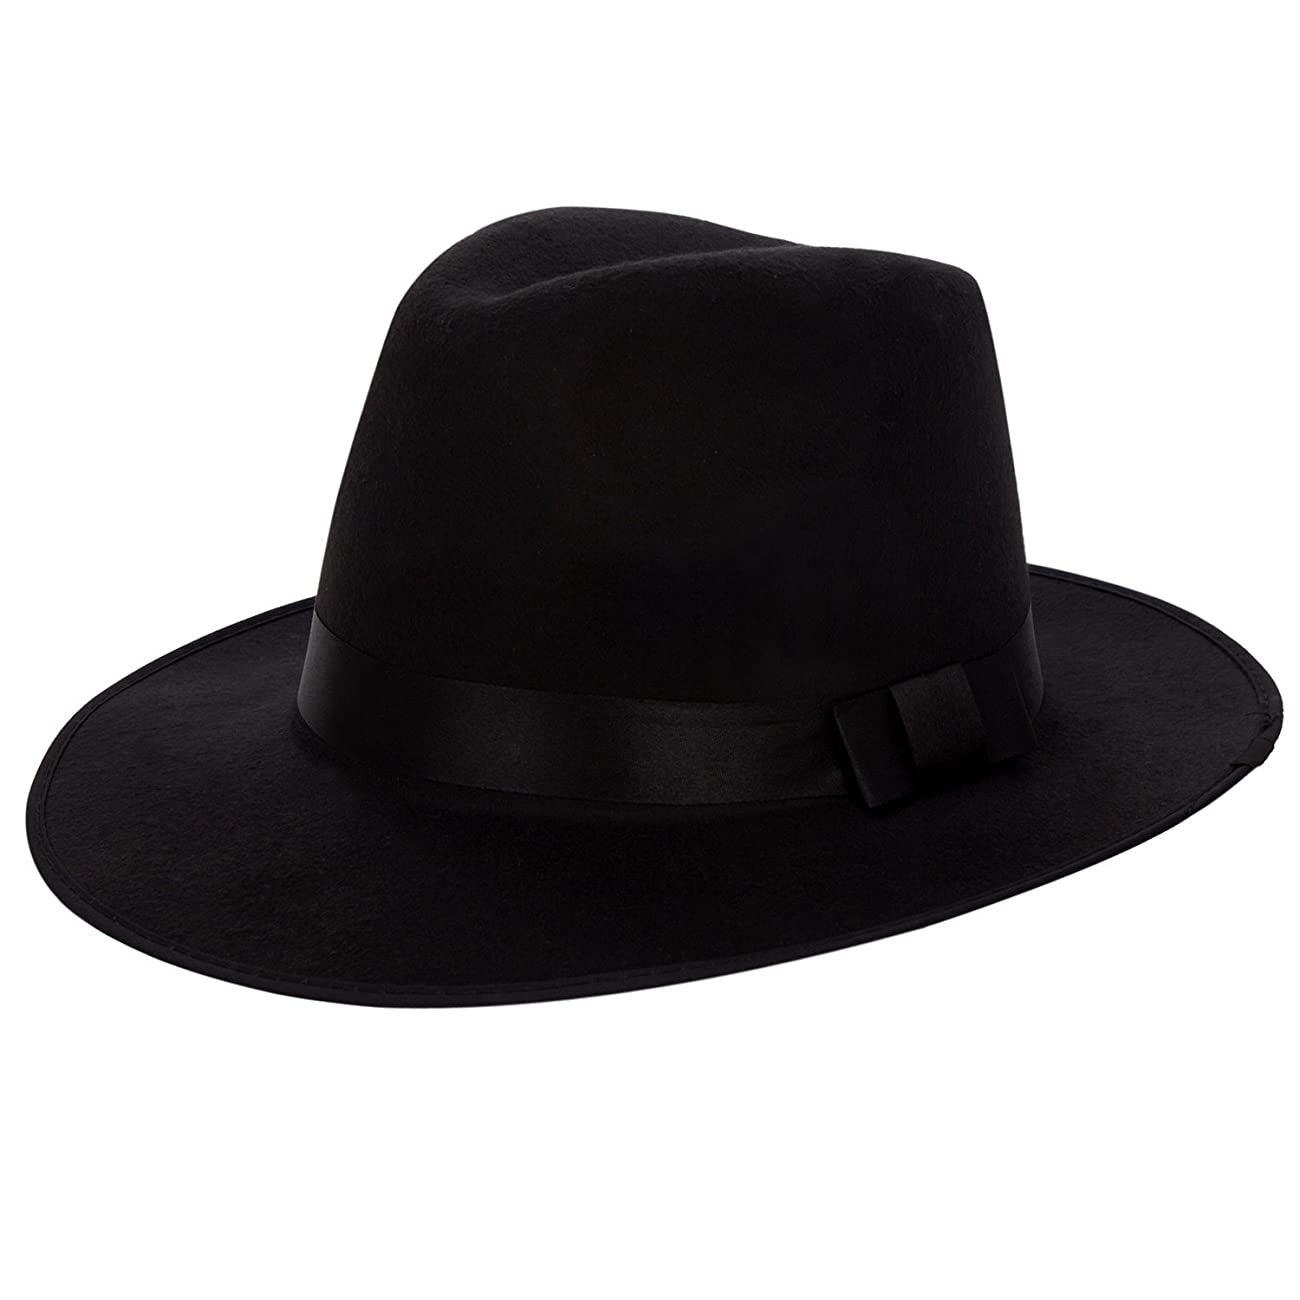 Aerusi Men's Vintage Wide Brim Hard Felt Fedora Panama Hat with Bowknot Black Ribbon 0